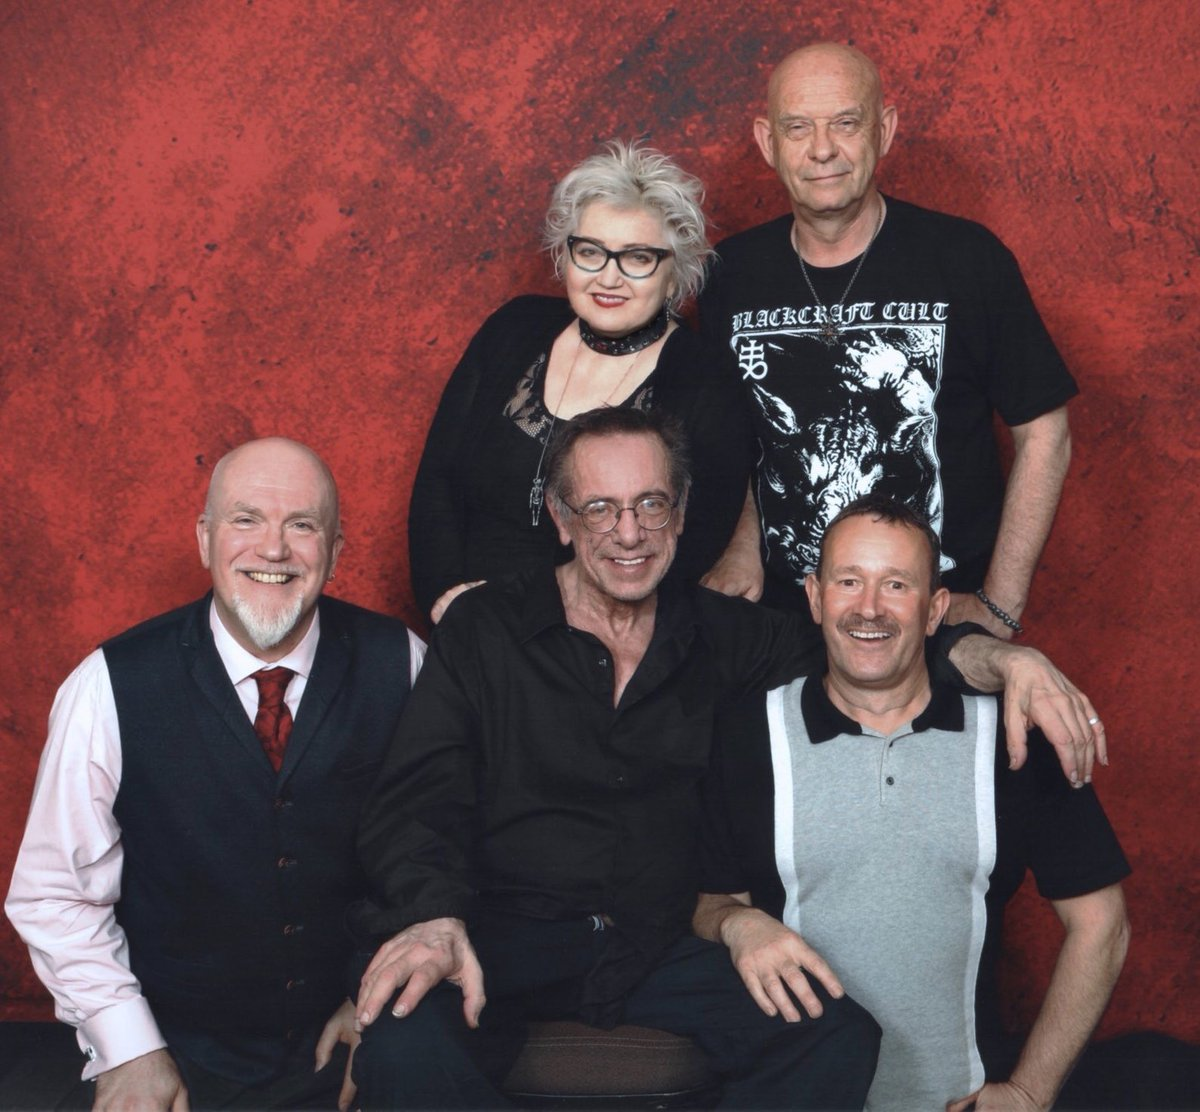 Clive Barker - Texas Frightmare with Hellraiser cast